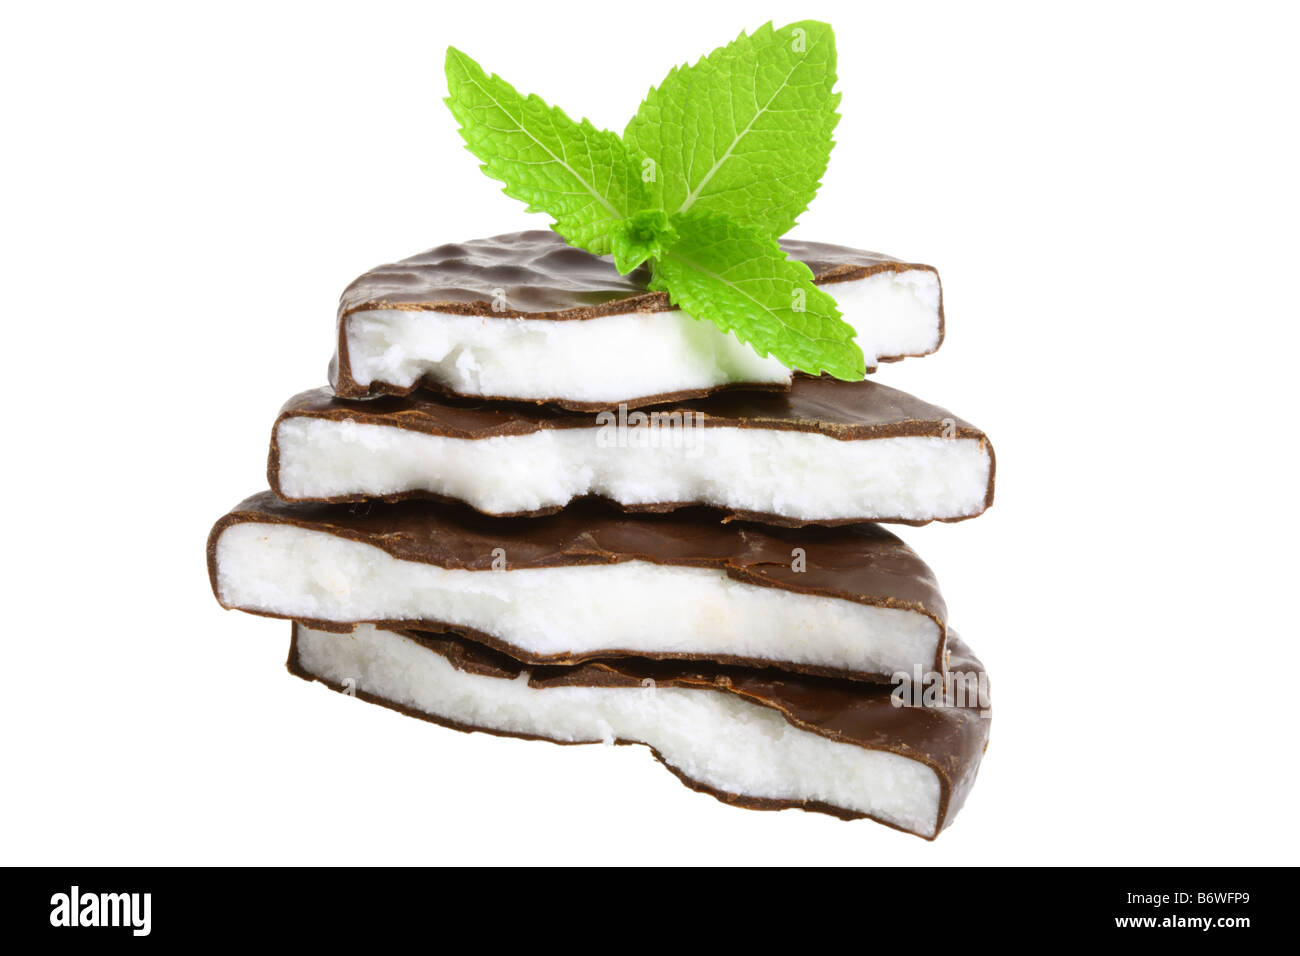 Stack of peppermint candy and fresh mint leaves cut out isolated on white background - Stock Image